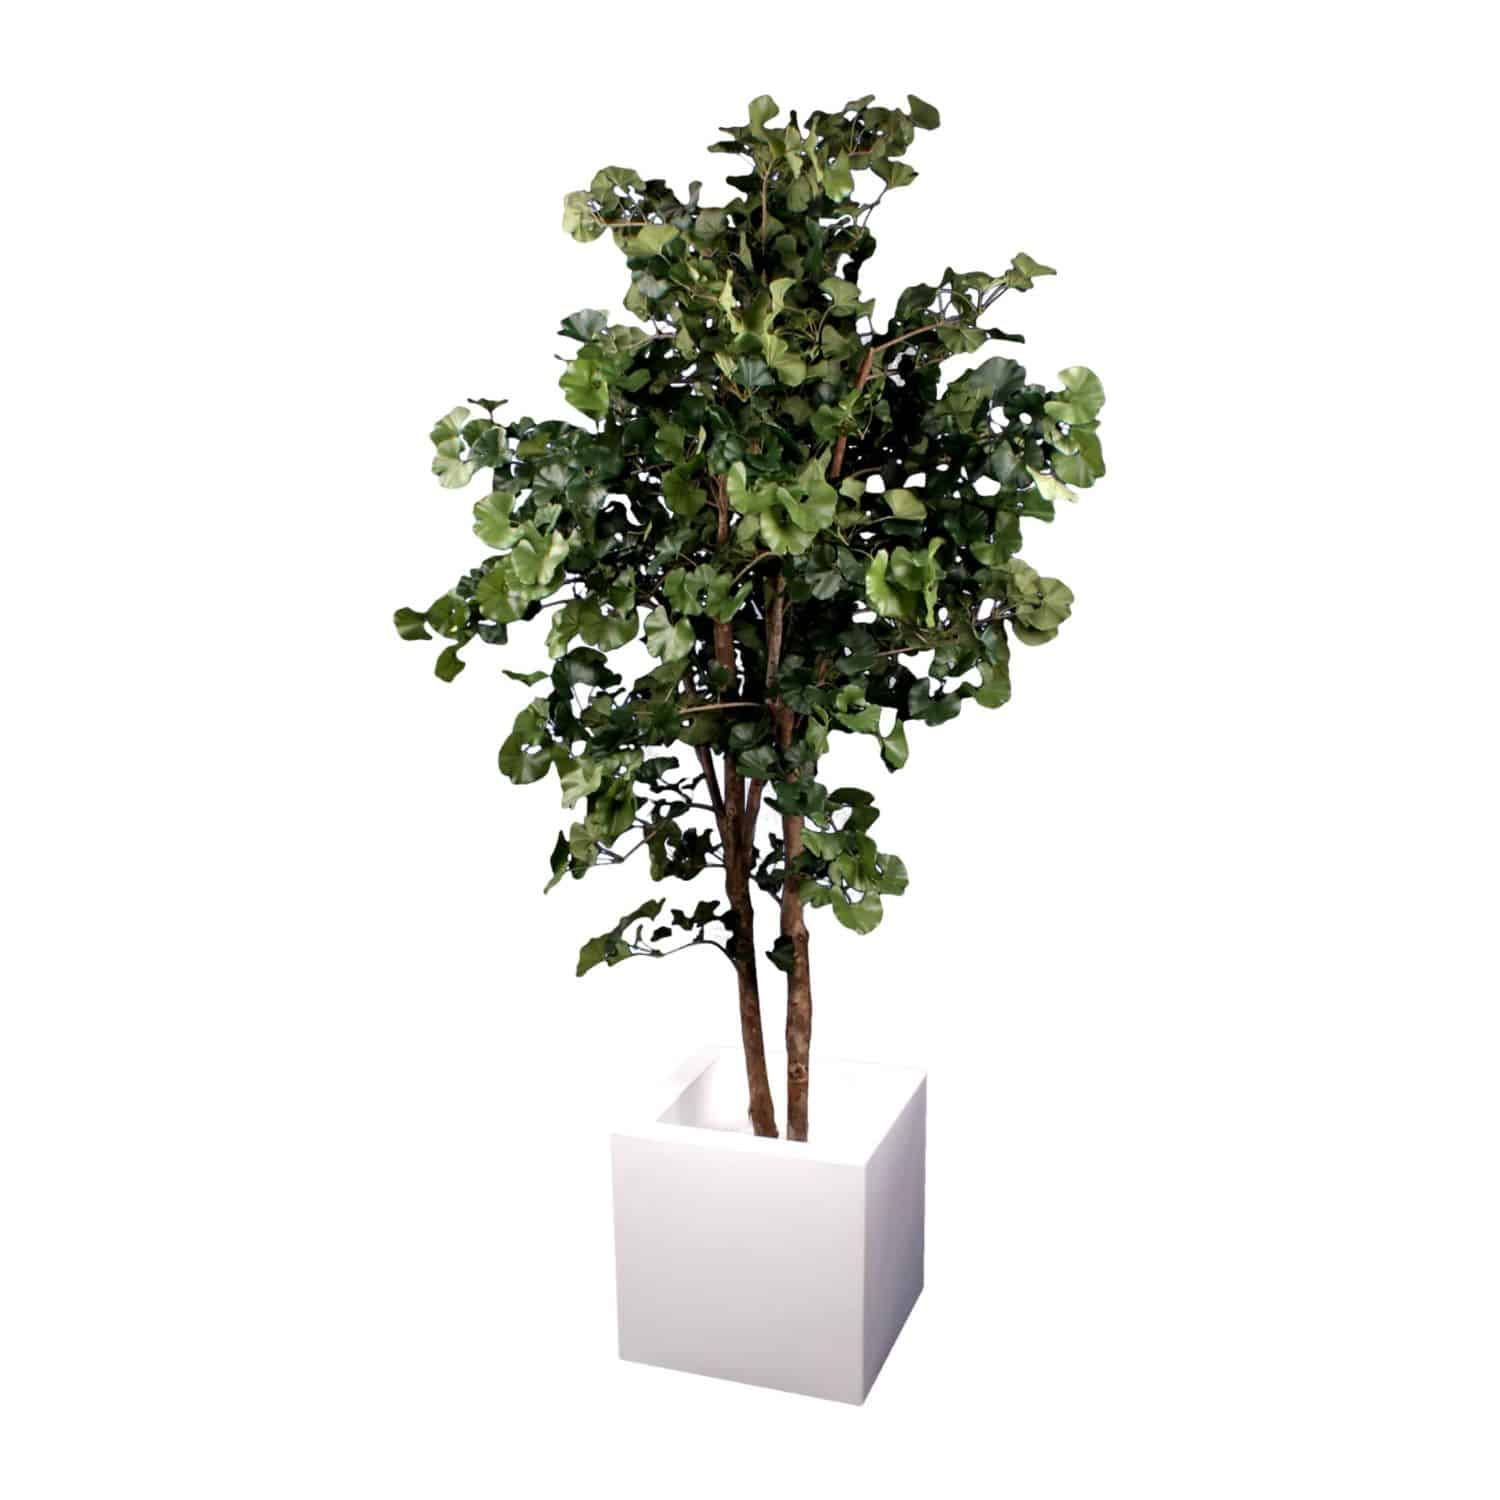 Shop for our artificial ginkgo tree with real tree bark trunk and natural colouring. In a versatile modern white pot. Soil free ideal for oriental gardens.